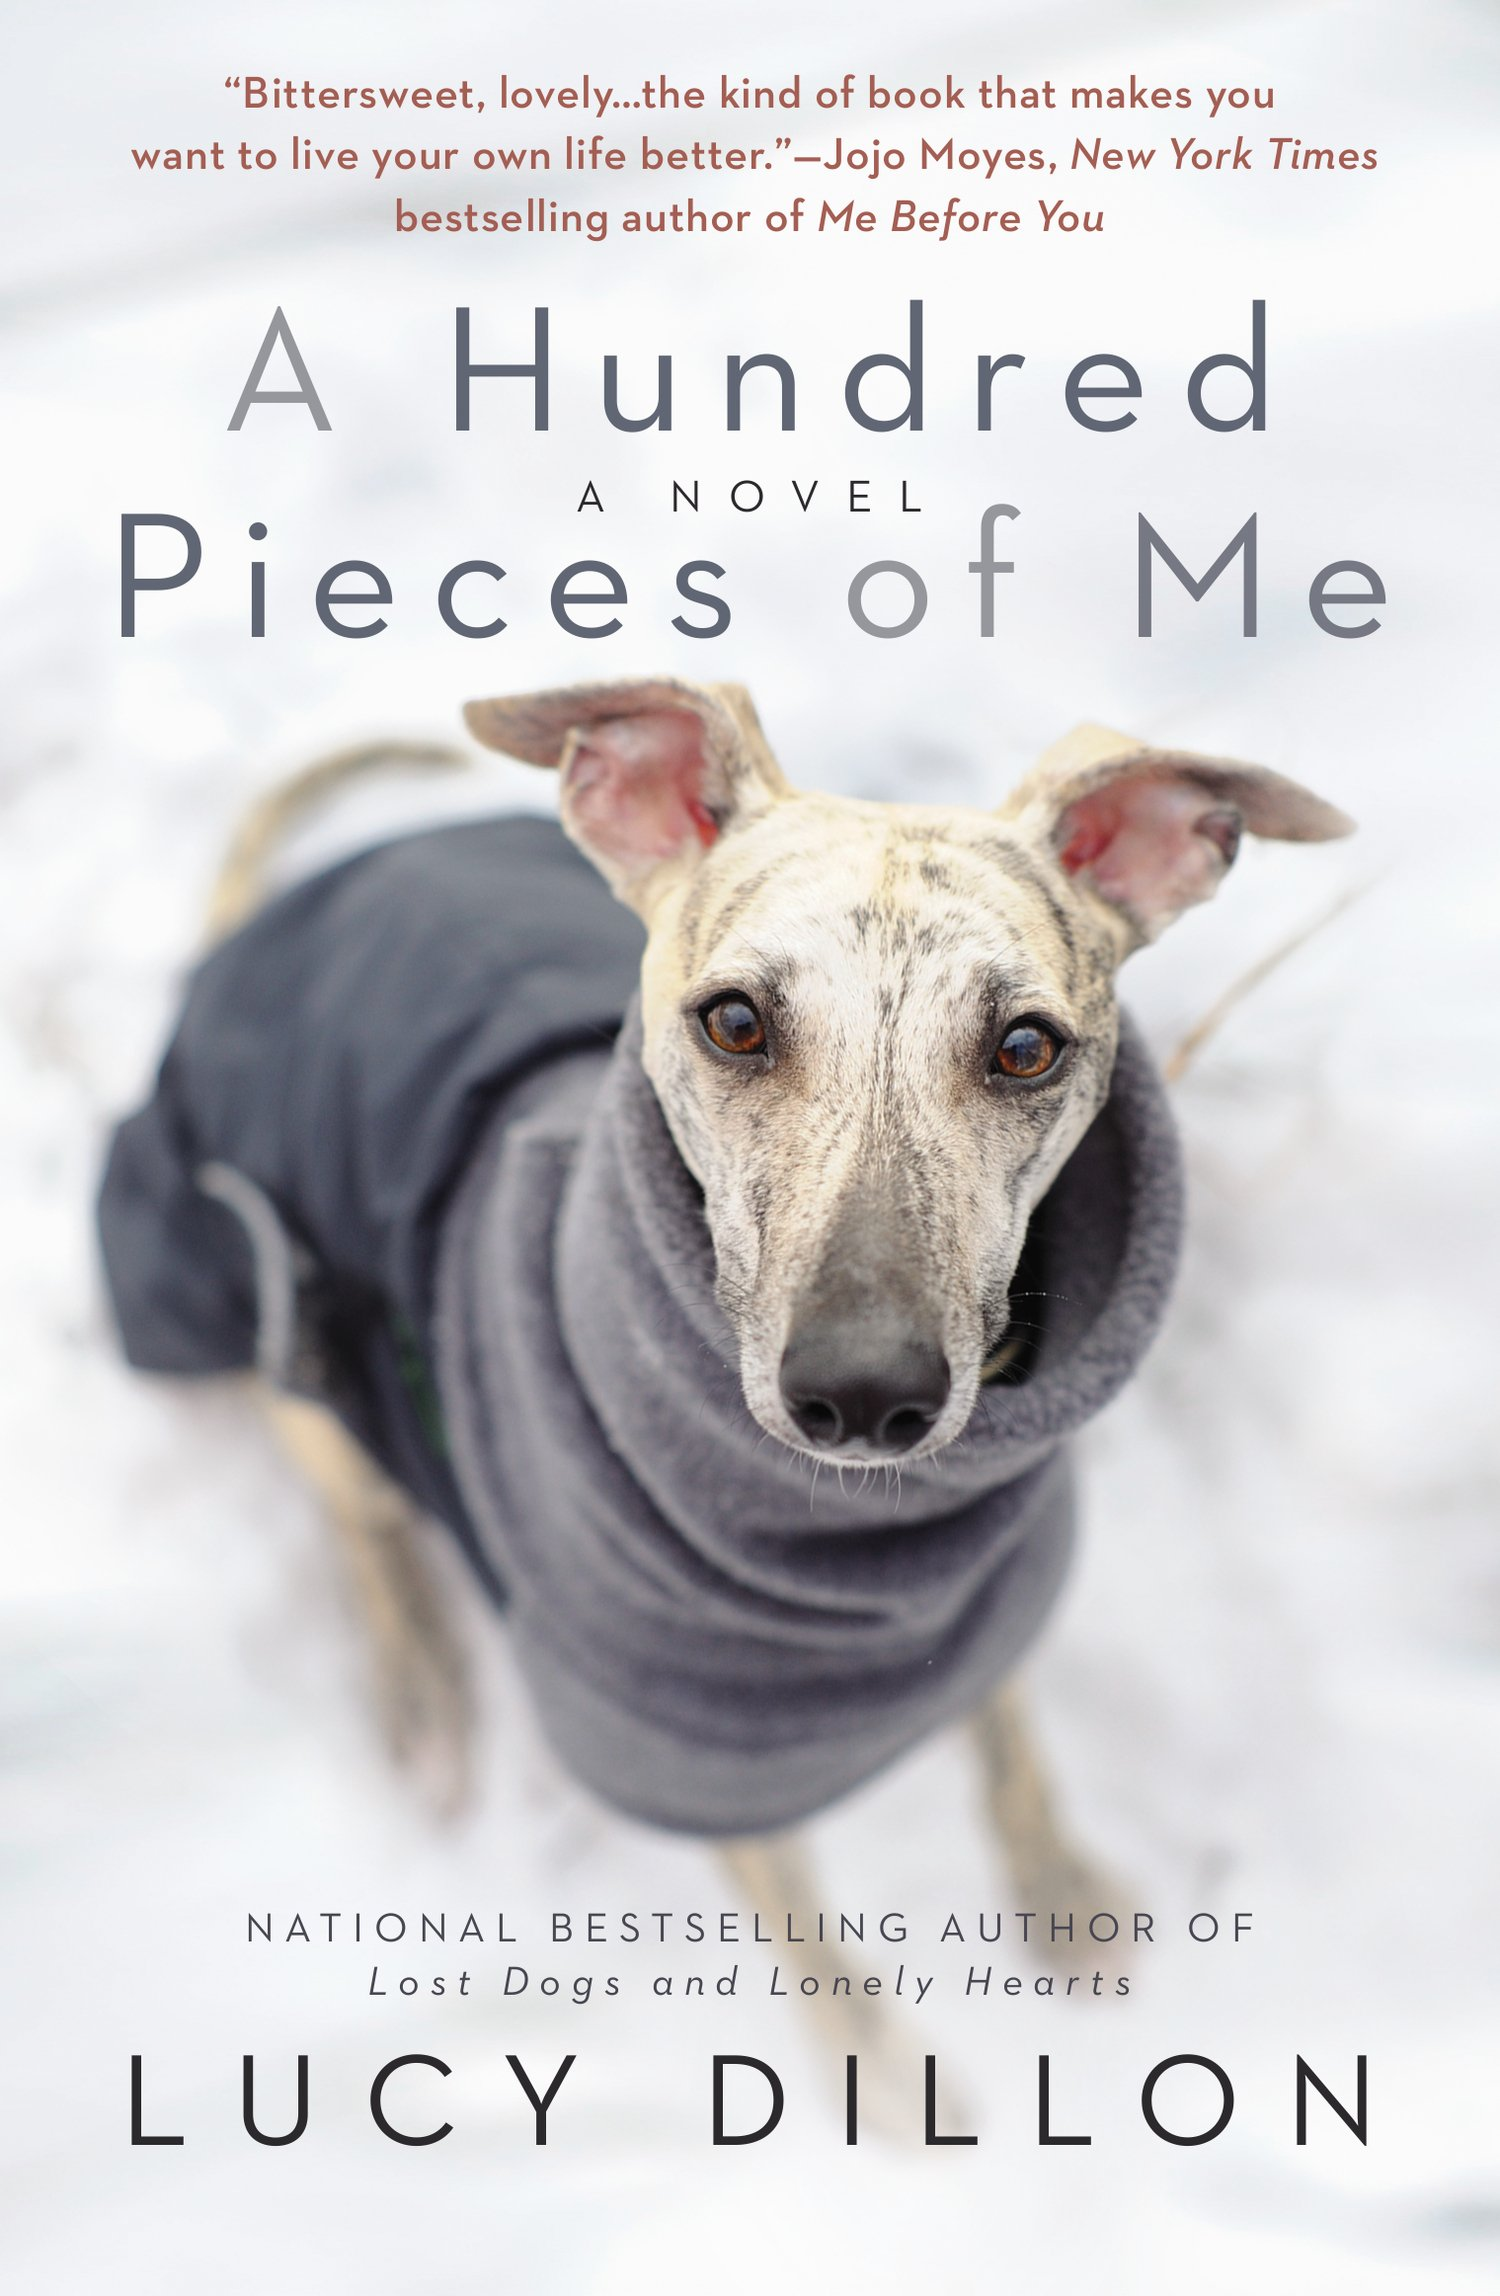 A Hundred Pieces Of Me by Lucy Dillon